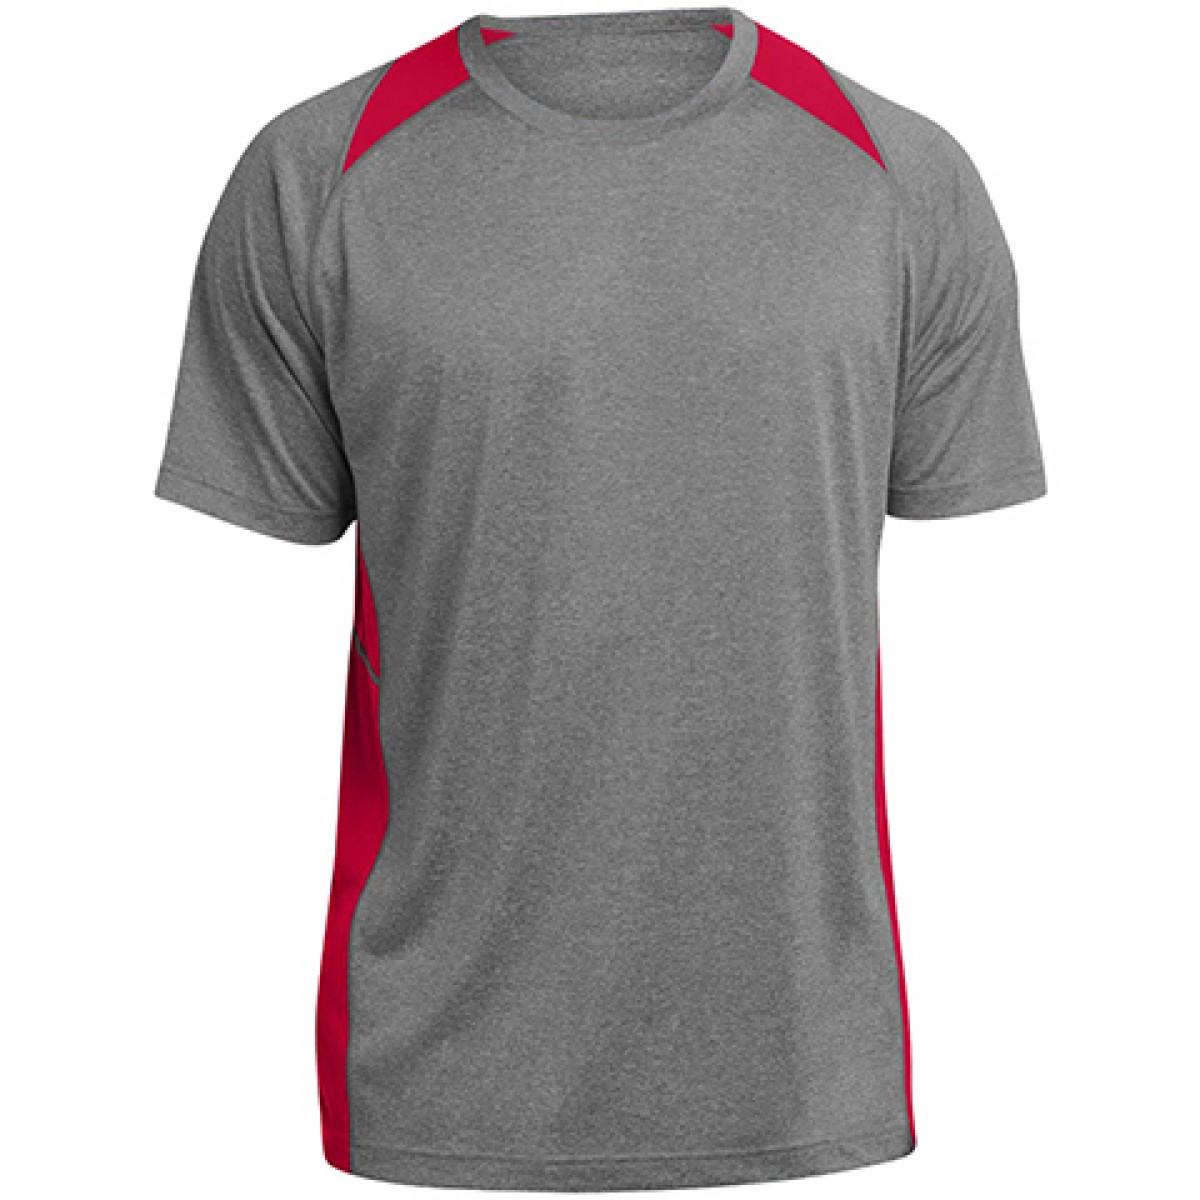 Heather Colorblock Contender™ Tee-Gray/Red-XL